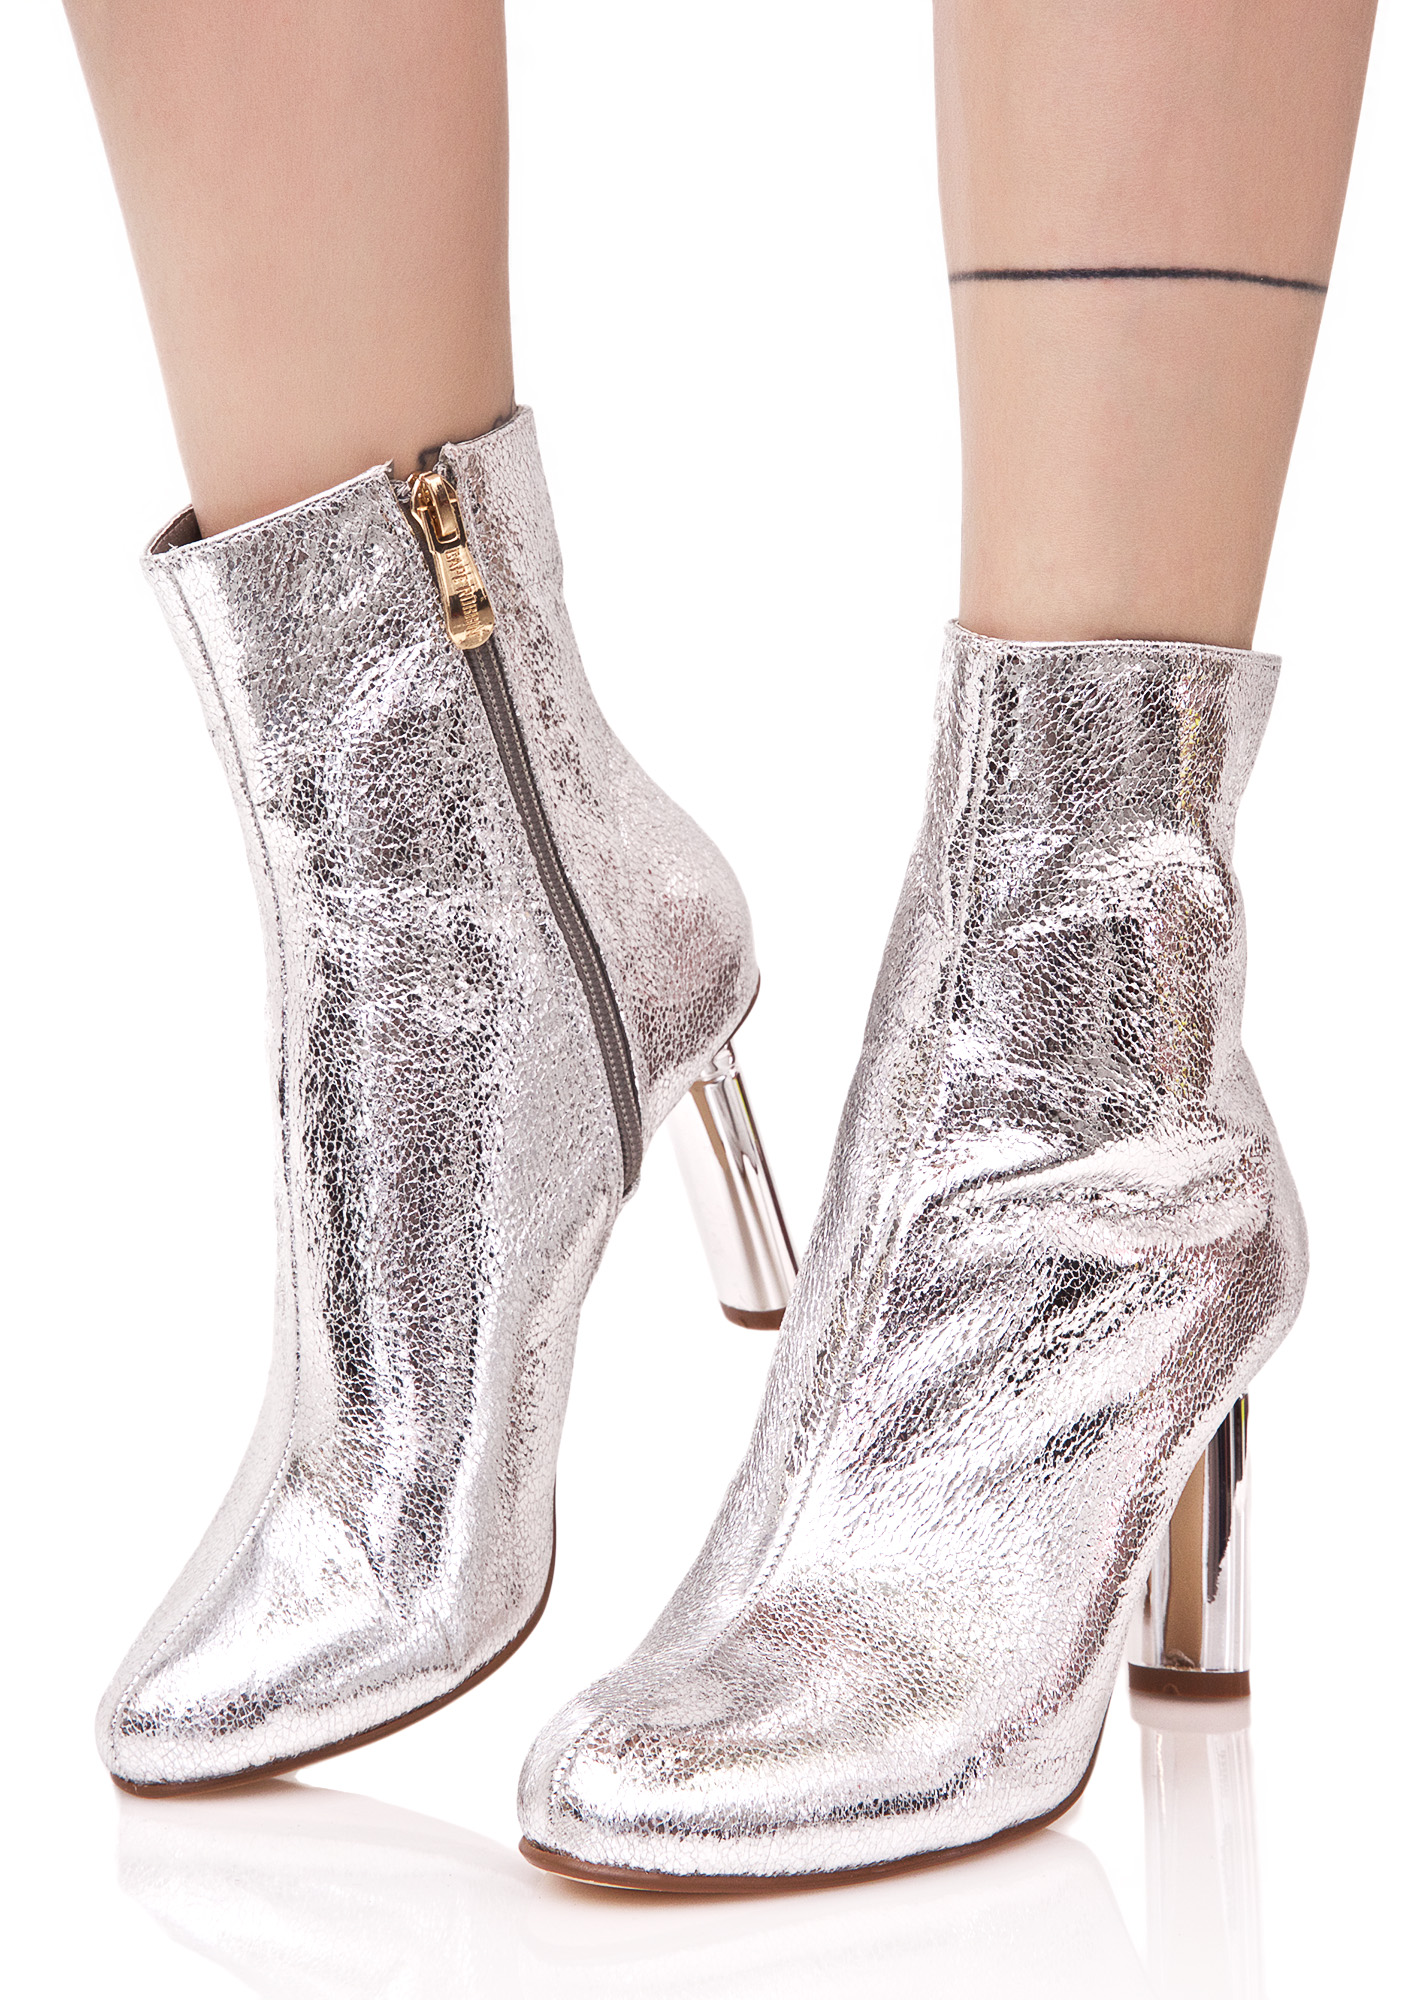 Metallic Silver Contrast Ankle Boots